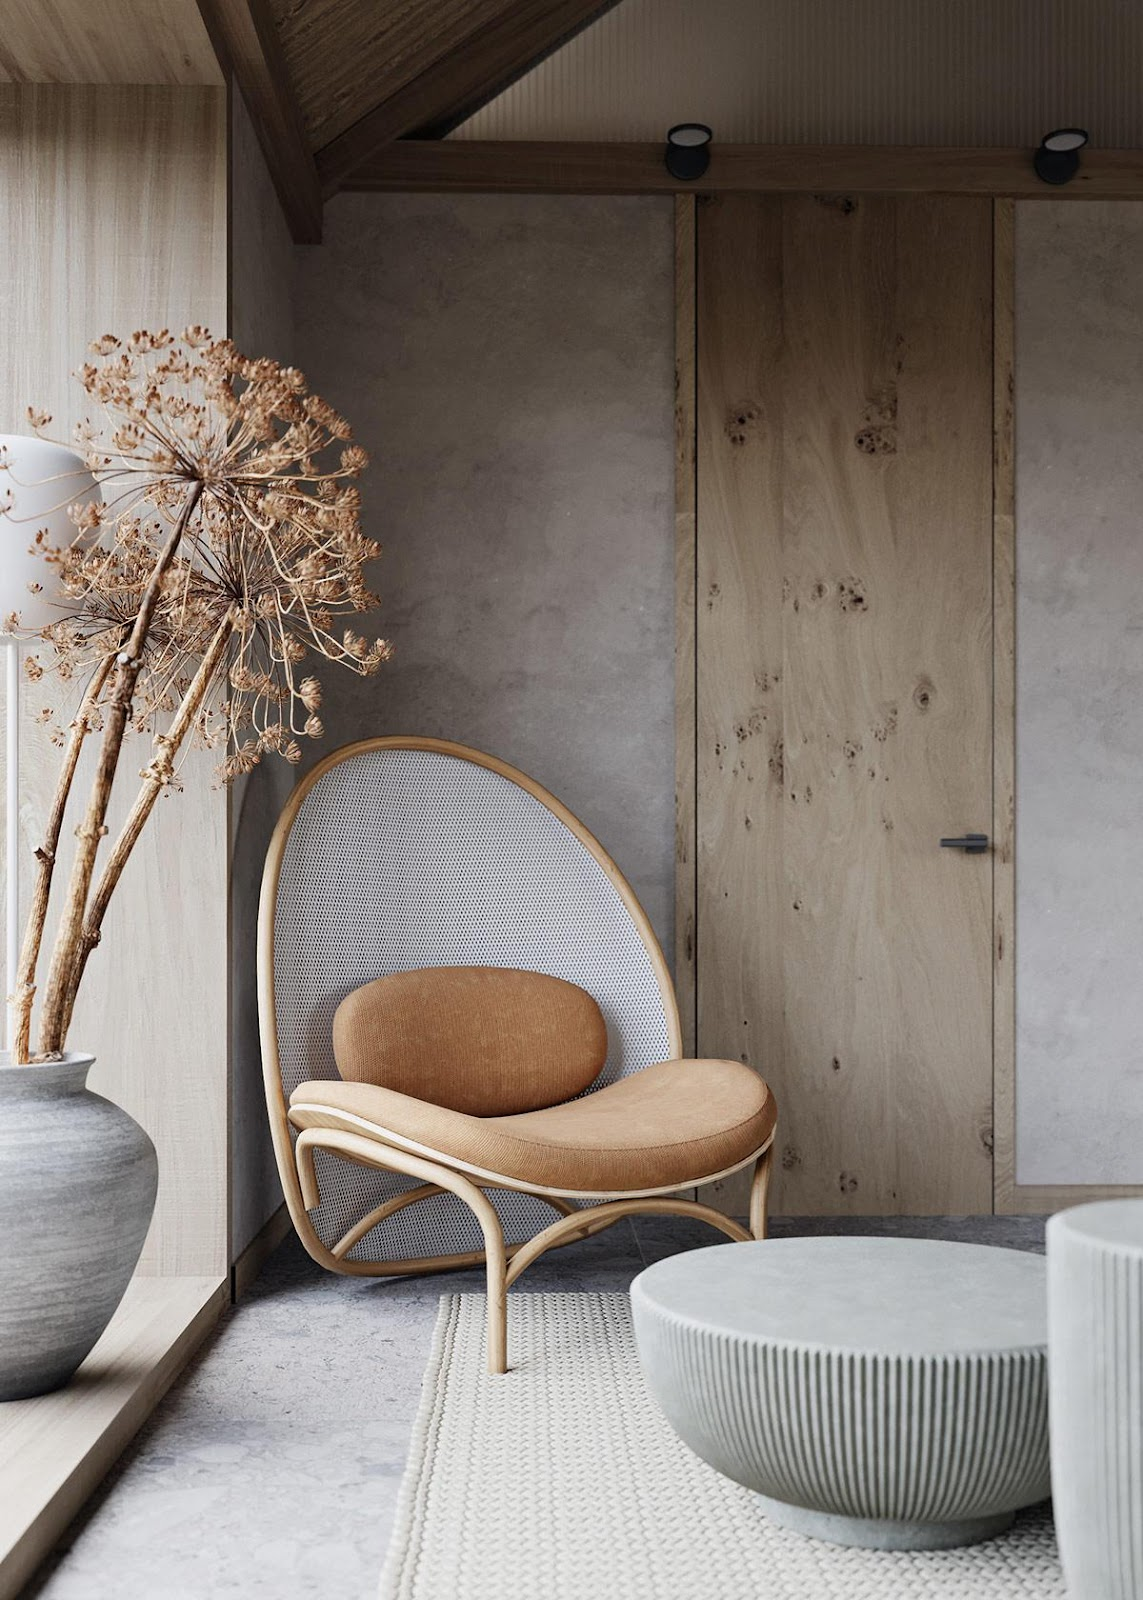 http://cdn.home-designing.com/wp-content/uploads/2021/04/arched-chair.jpg